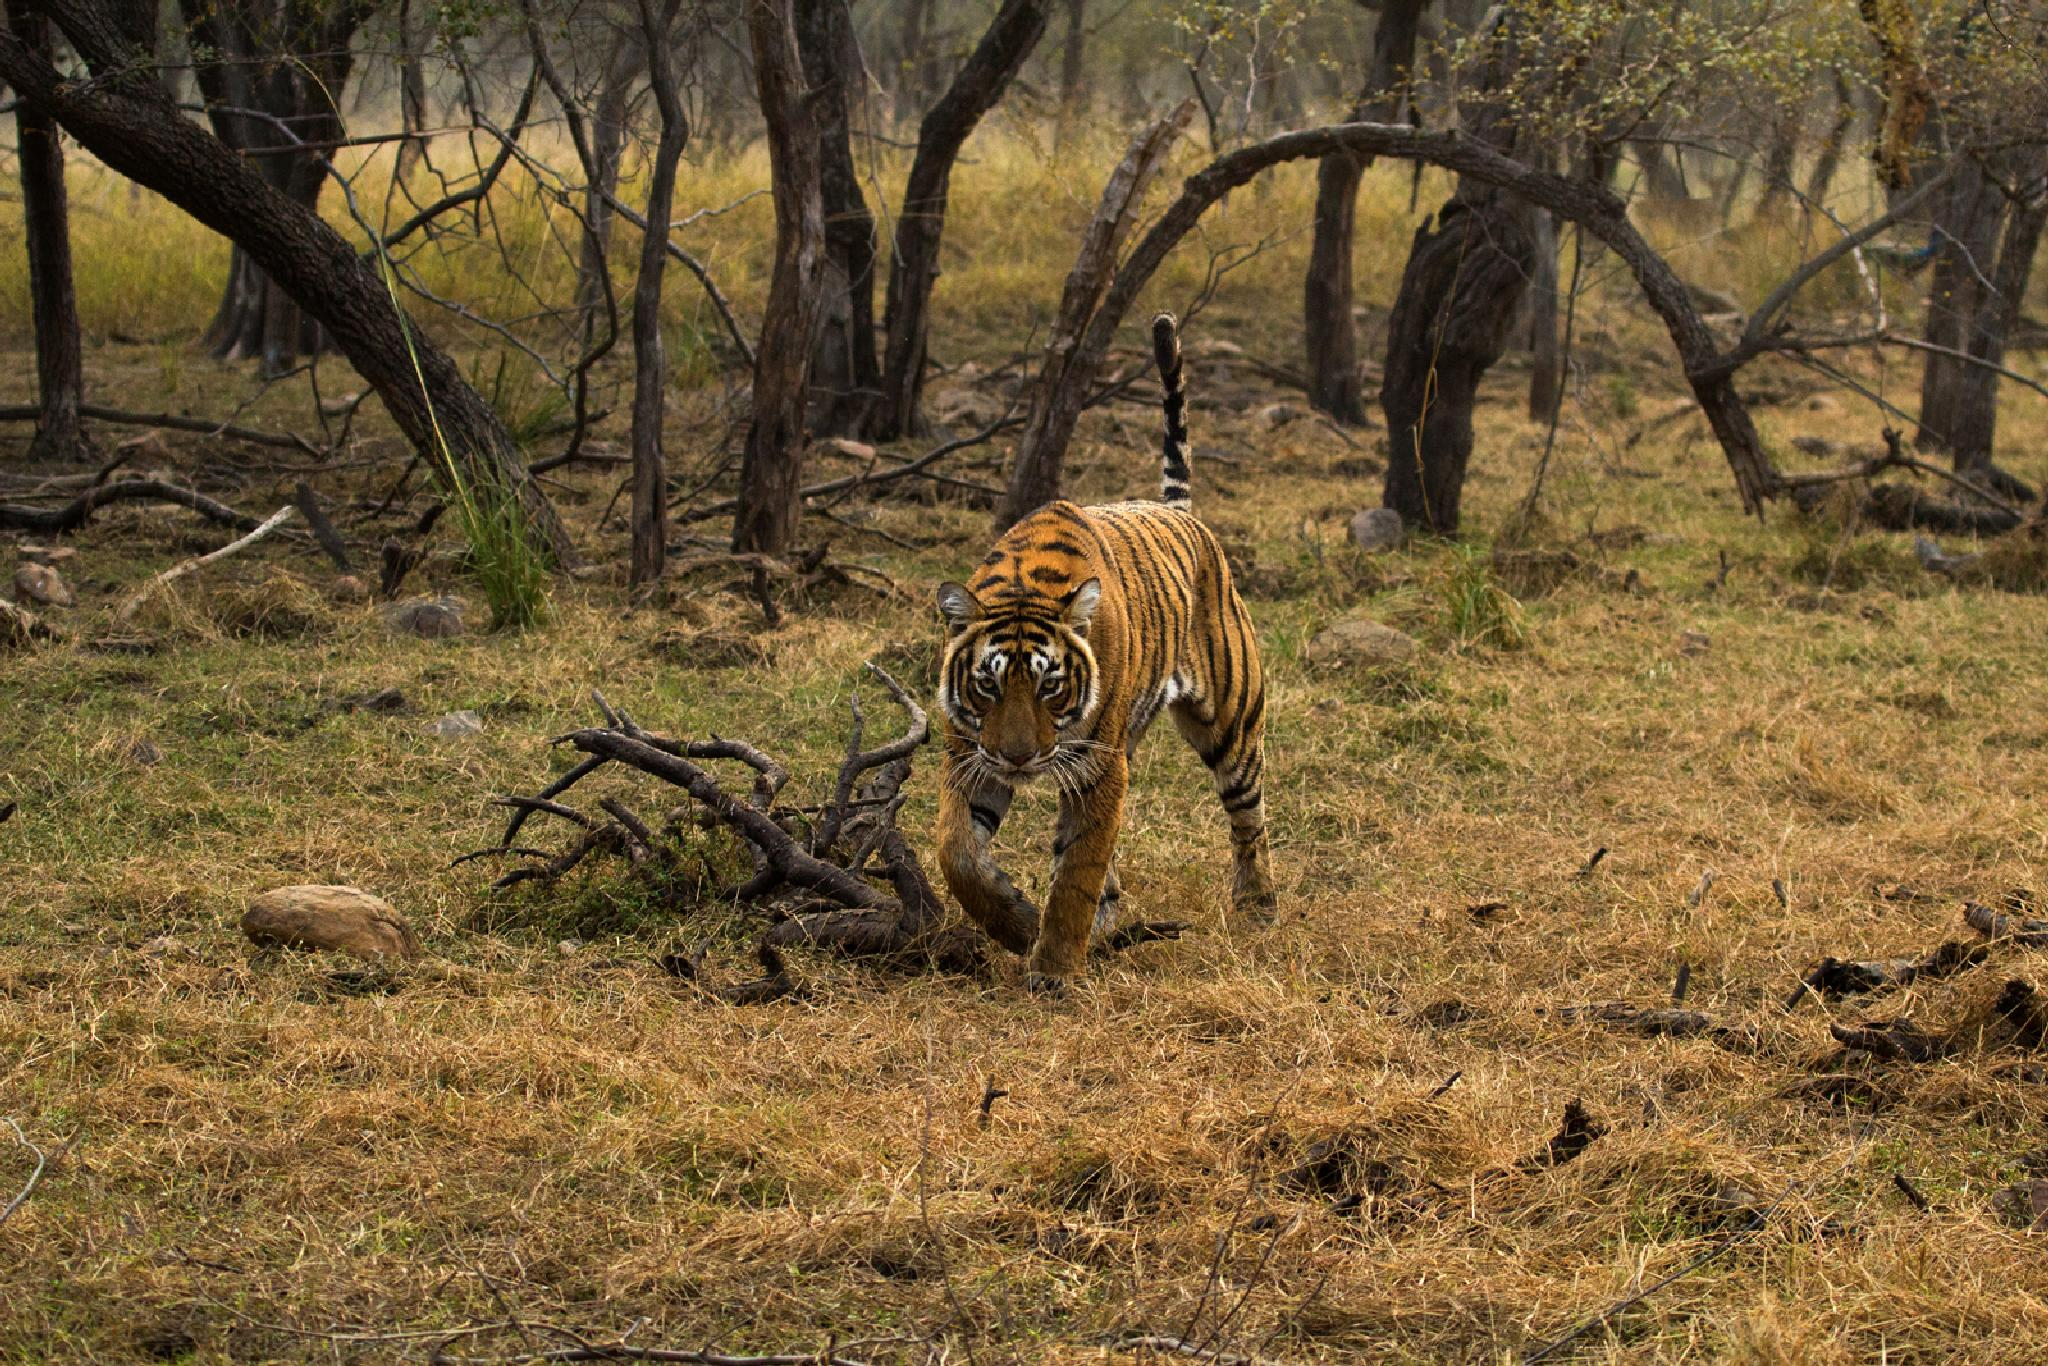 Tigress T19 aka Krishna at Ranthambore National Park, India by Abhijeet Sawant